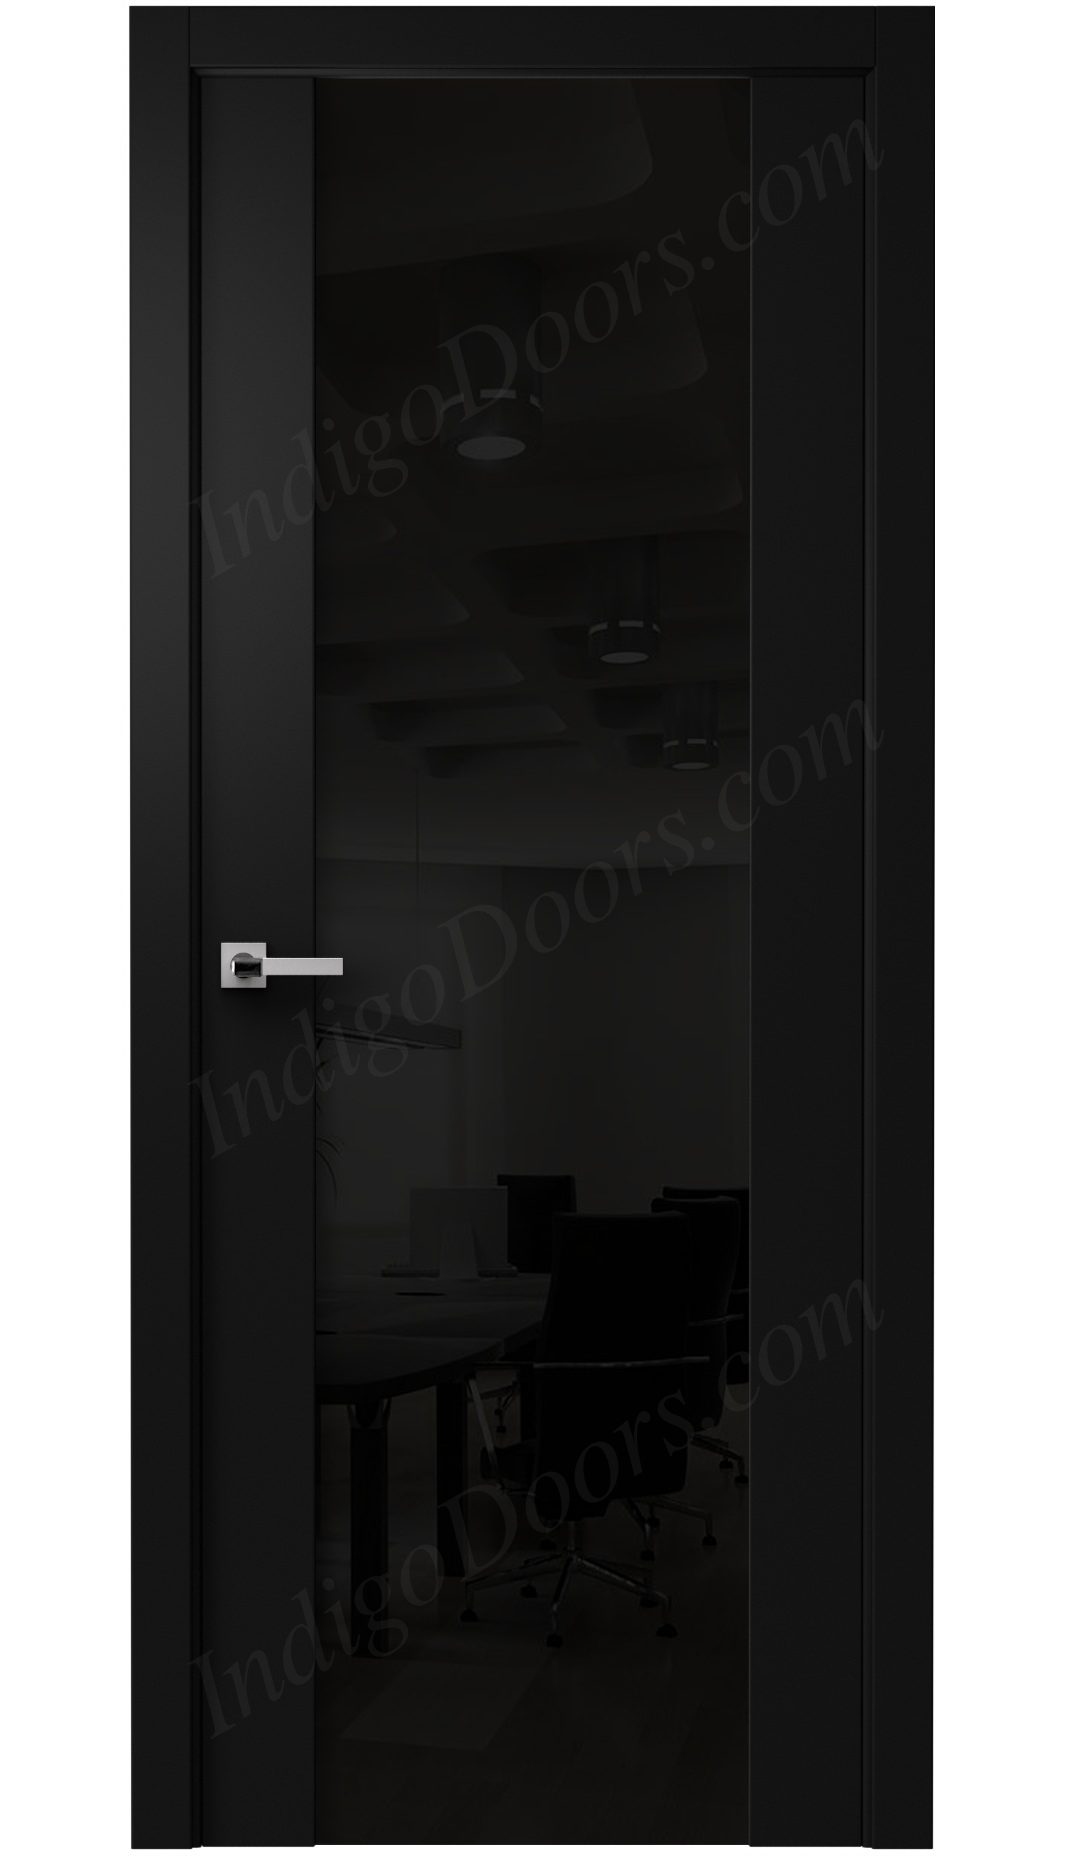 Image Vento Interior Door Diablo Black / Black Glass 0